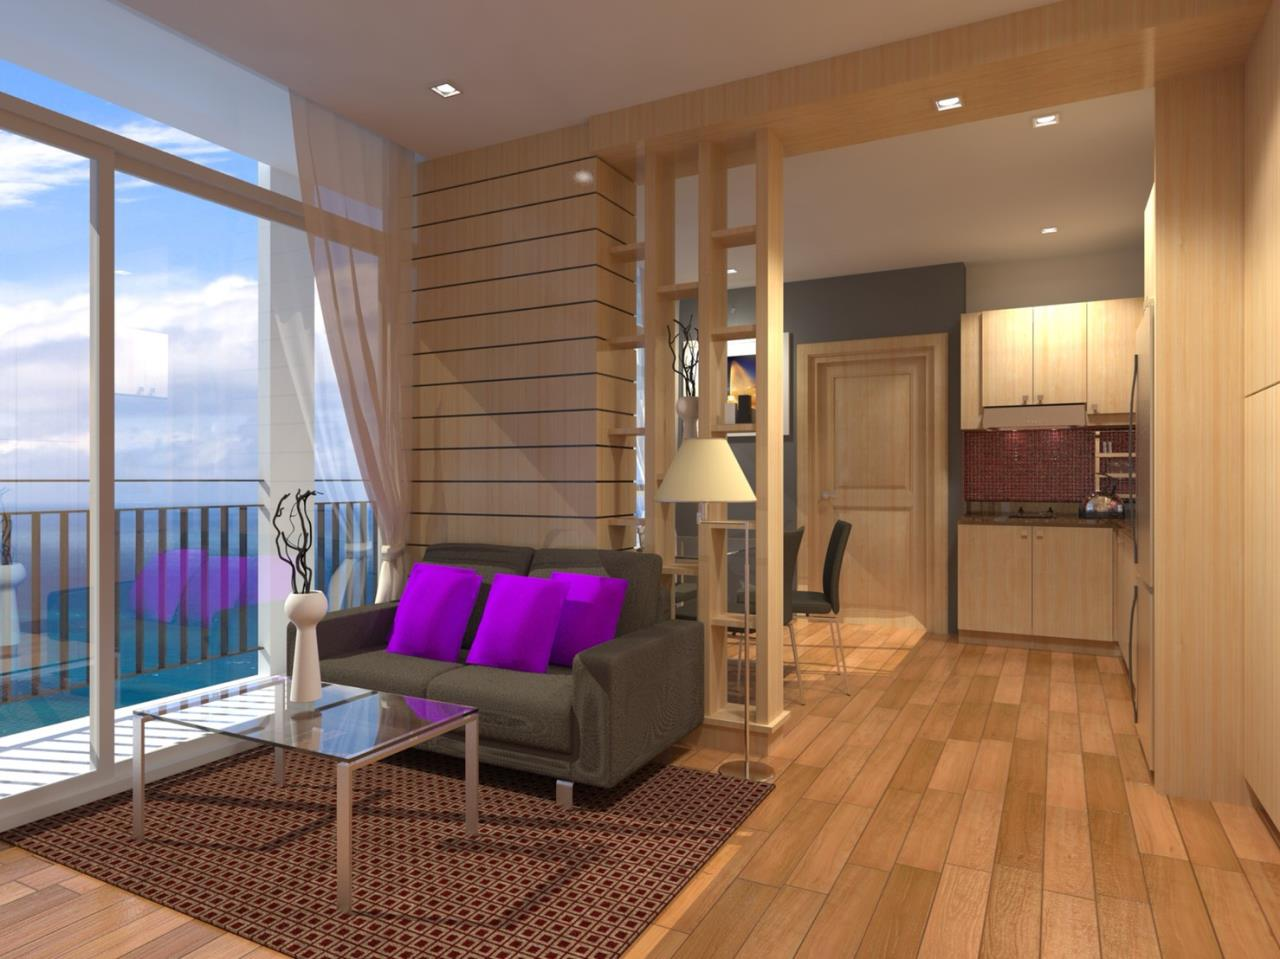 Signature Realty ( Thailand ) Co Ltd Agency's Furnished 2bedroom 65.75 sq.m condo with jacuzzi floor 2-11 at The Grand Jomtein Beach Pattaya 5